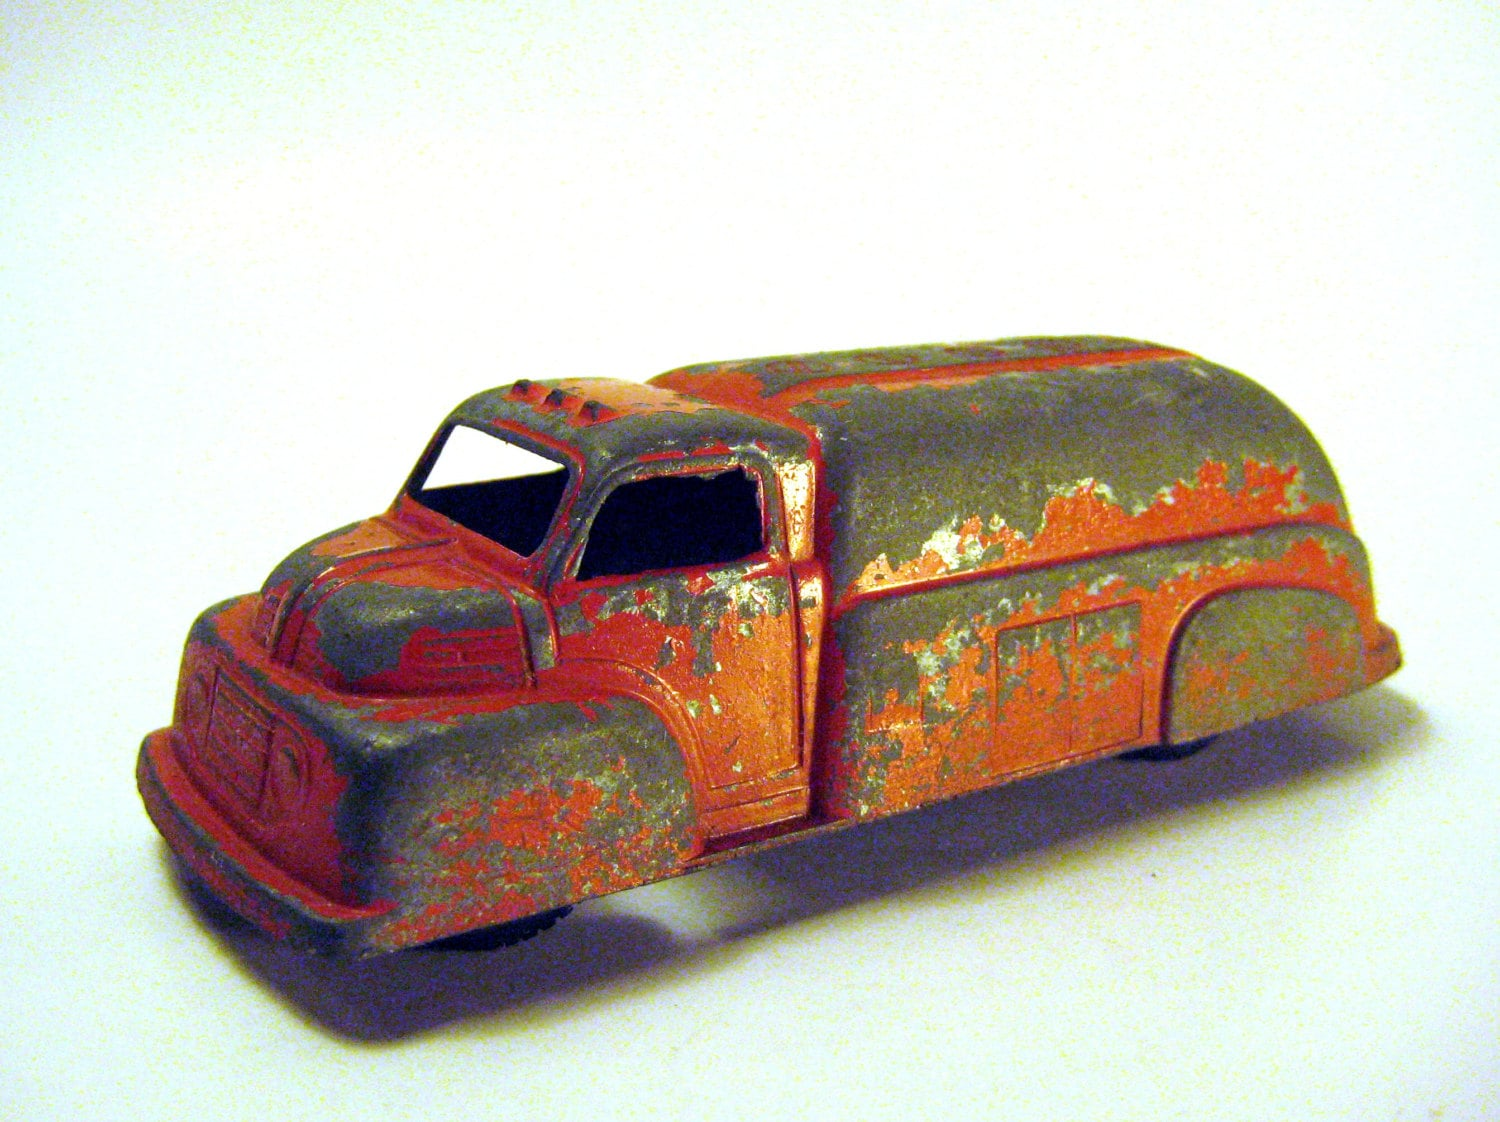 Tootsie Toys Chicago Oil Tanker Diecast Collectible 1940s